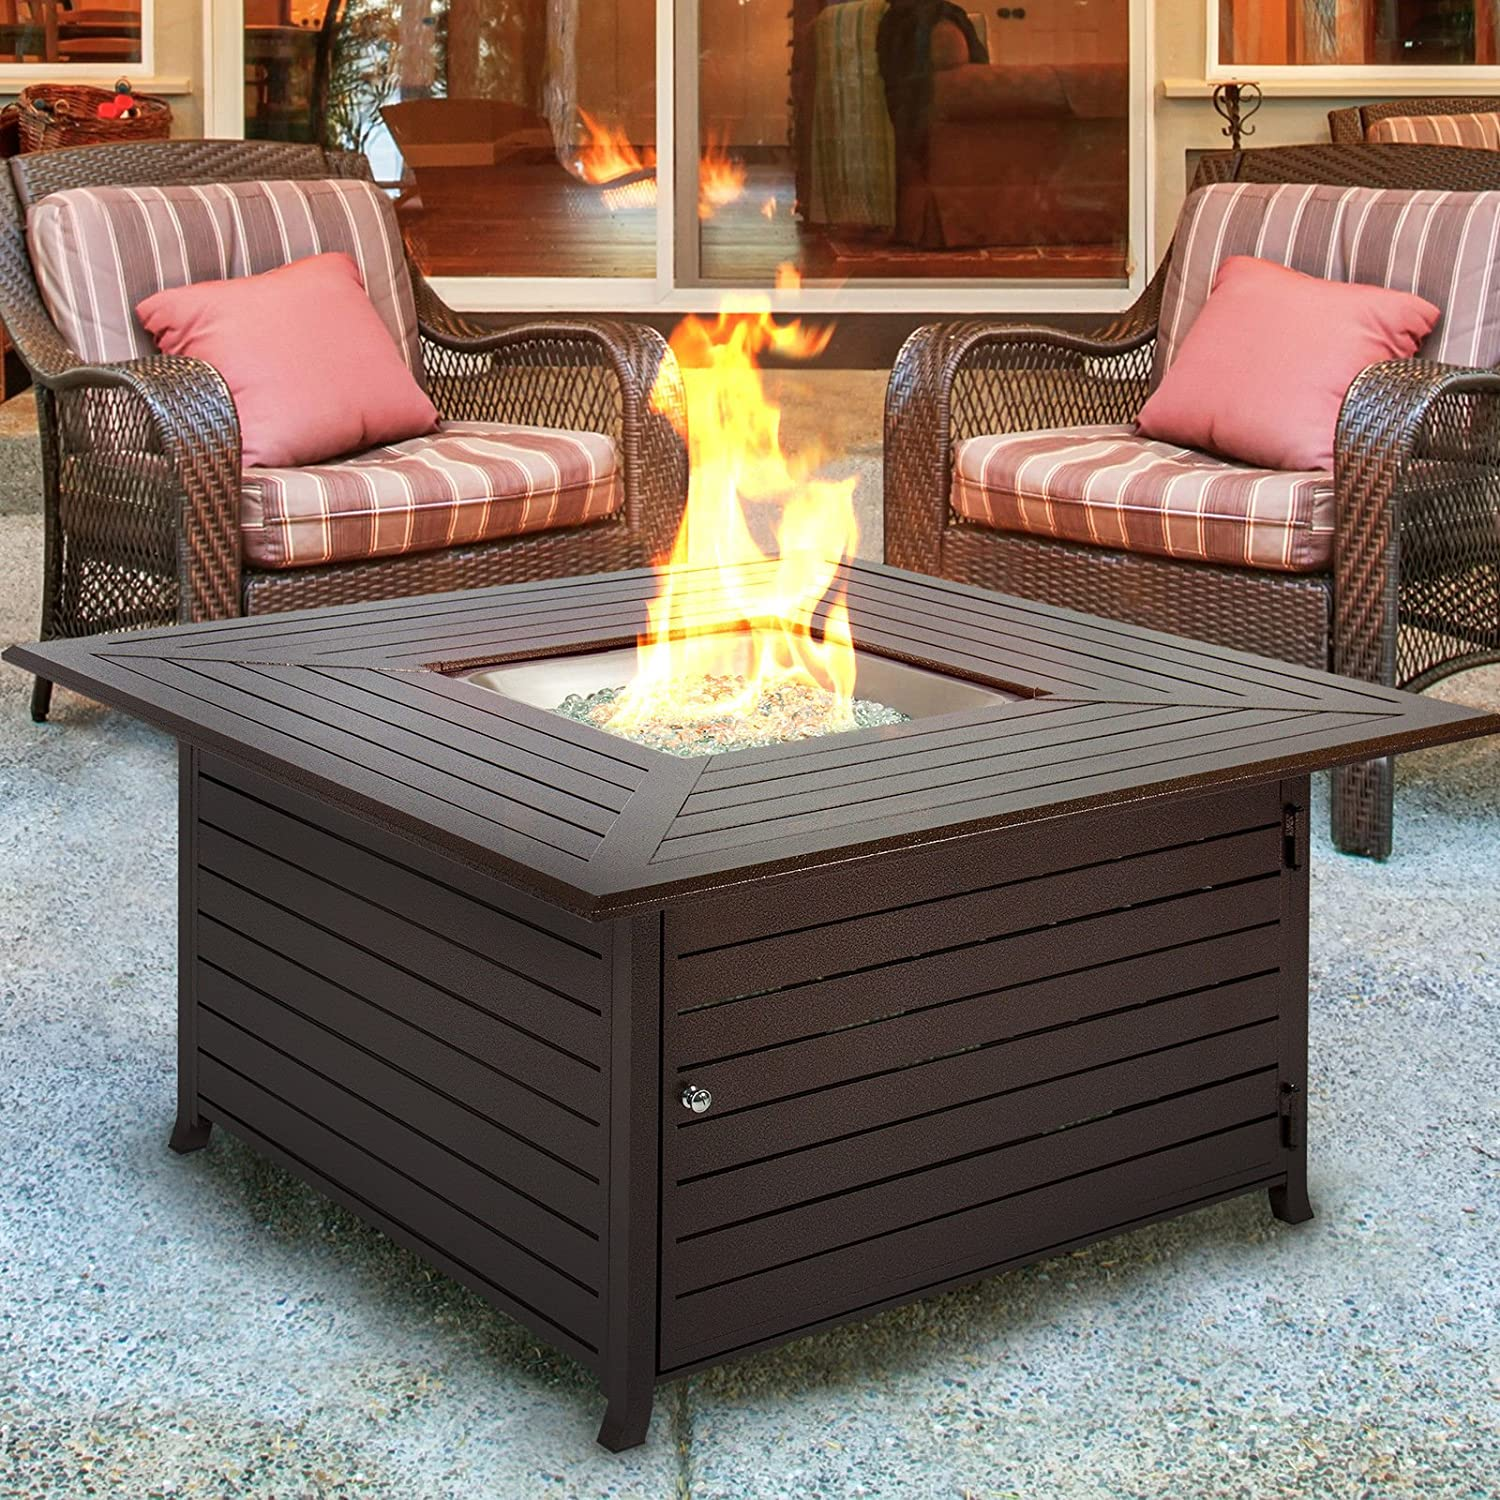 Extruded Aluminum Gas Outdoor Fire Pit Table